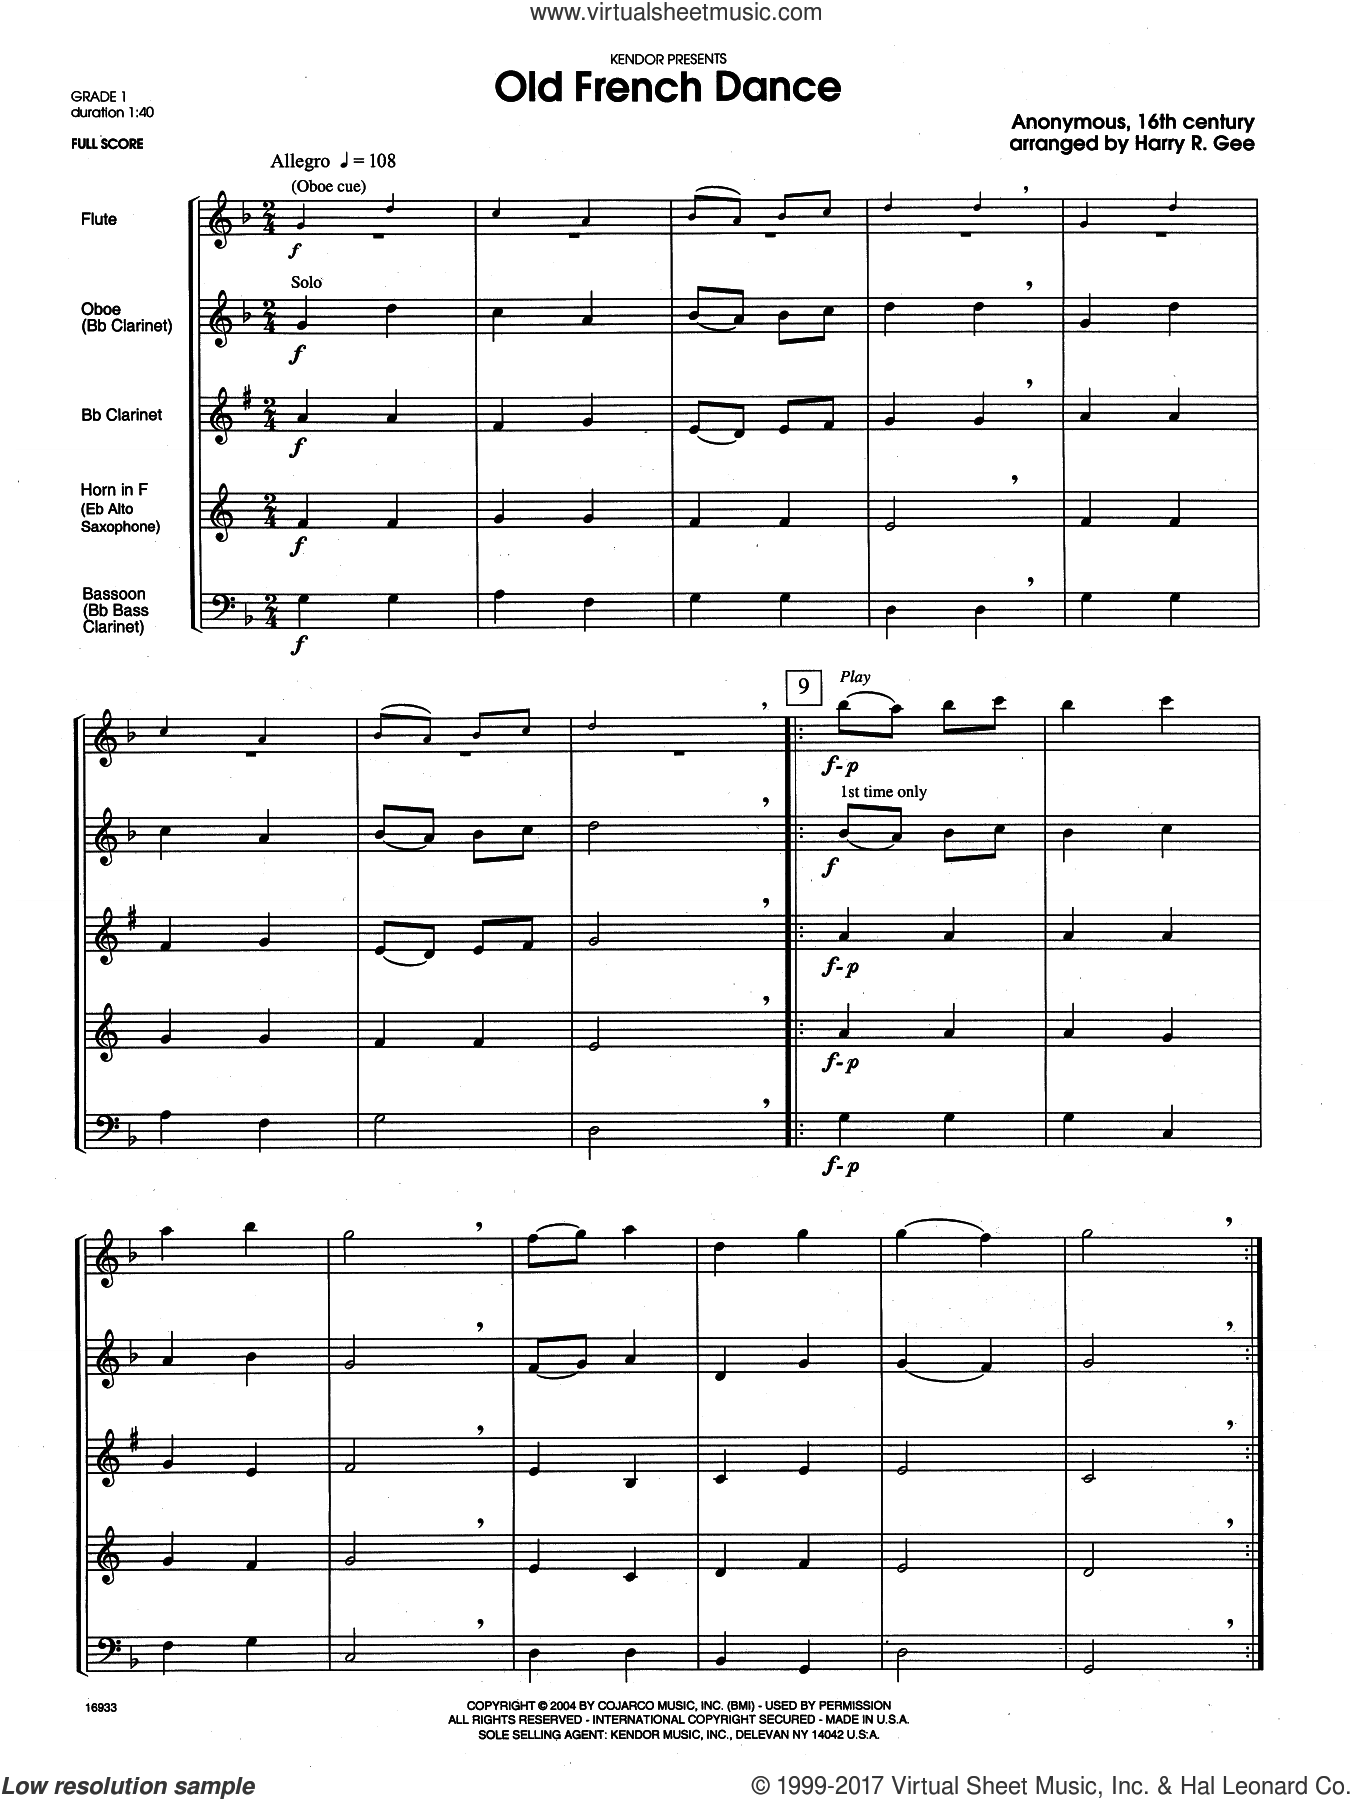 Old French Dance (COMPLETE) sheet music for wind quintet by Harry Gee, intermediate skill level